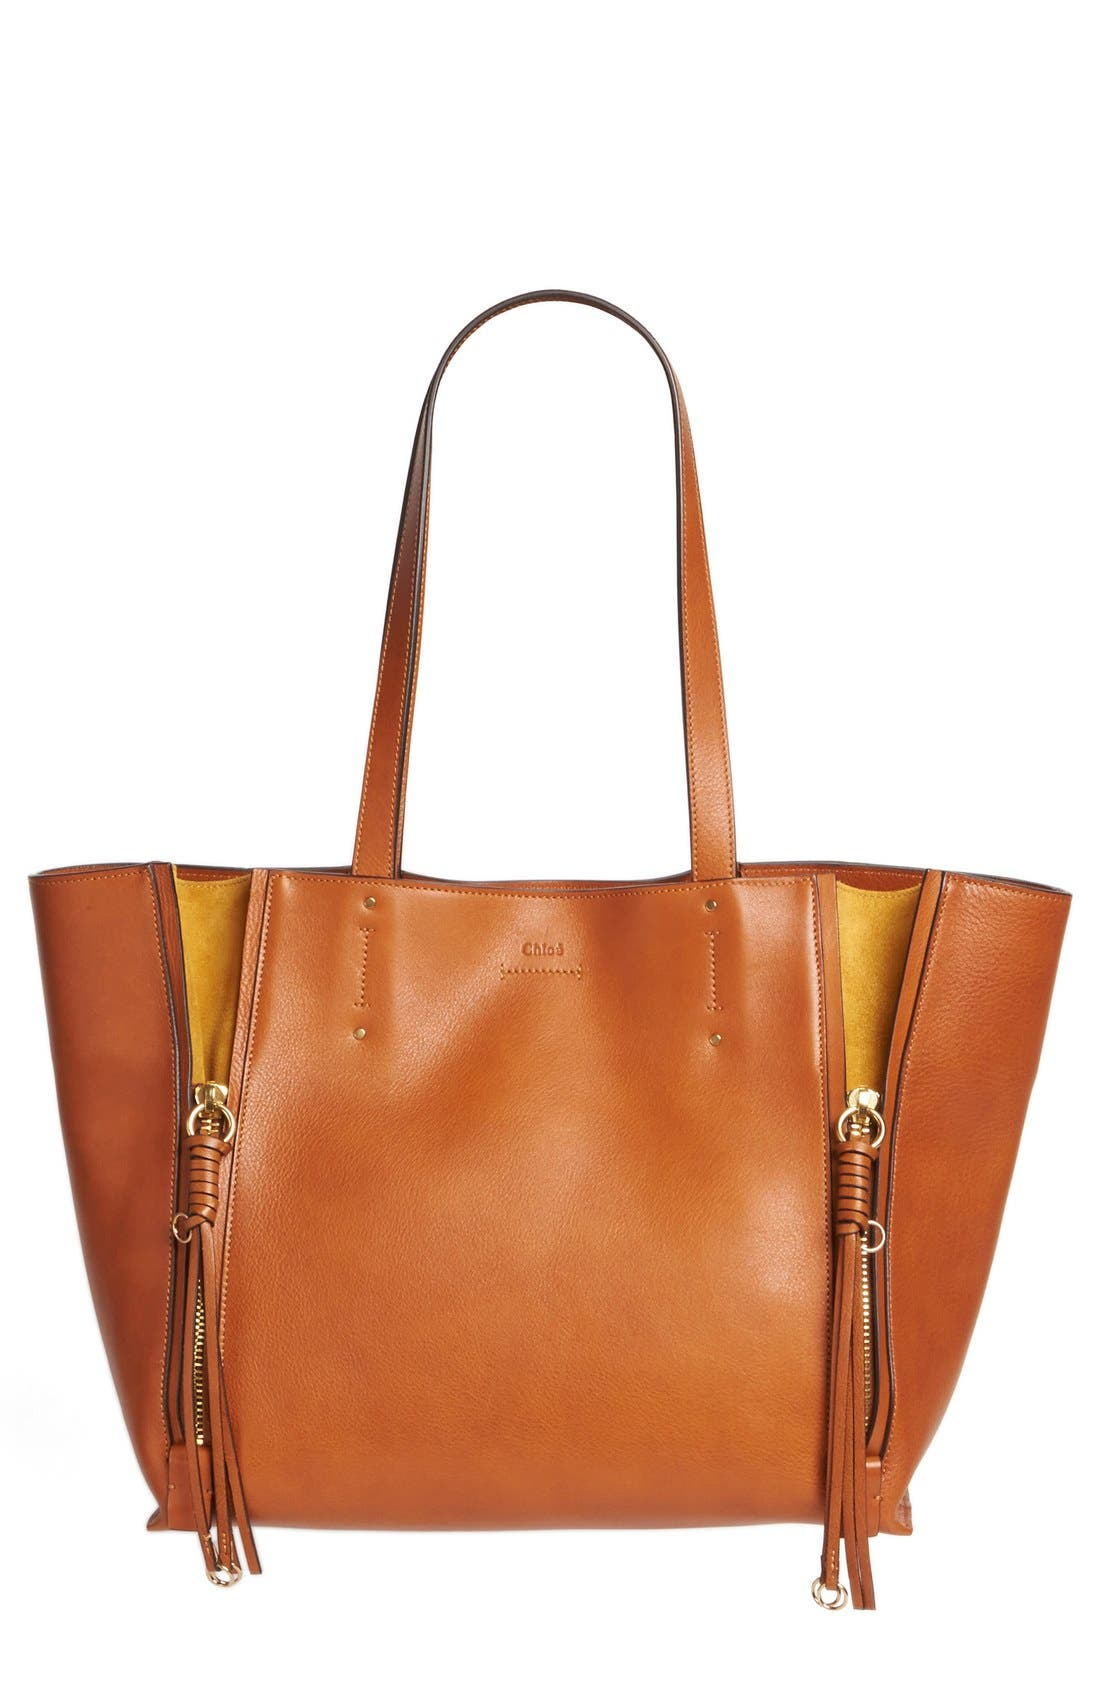 Medium Milo Calfskin Leather Tote,                             Main thumbnail 1, color,                             Caramel